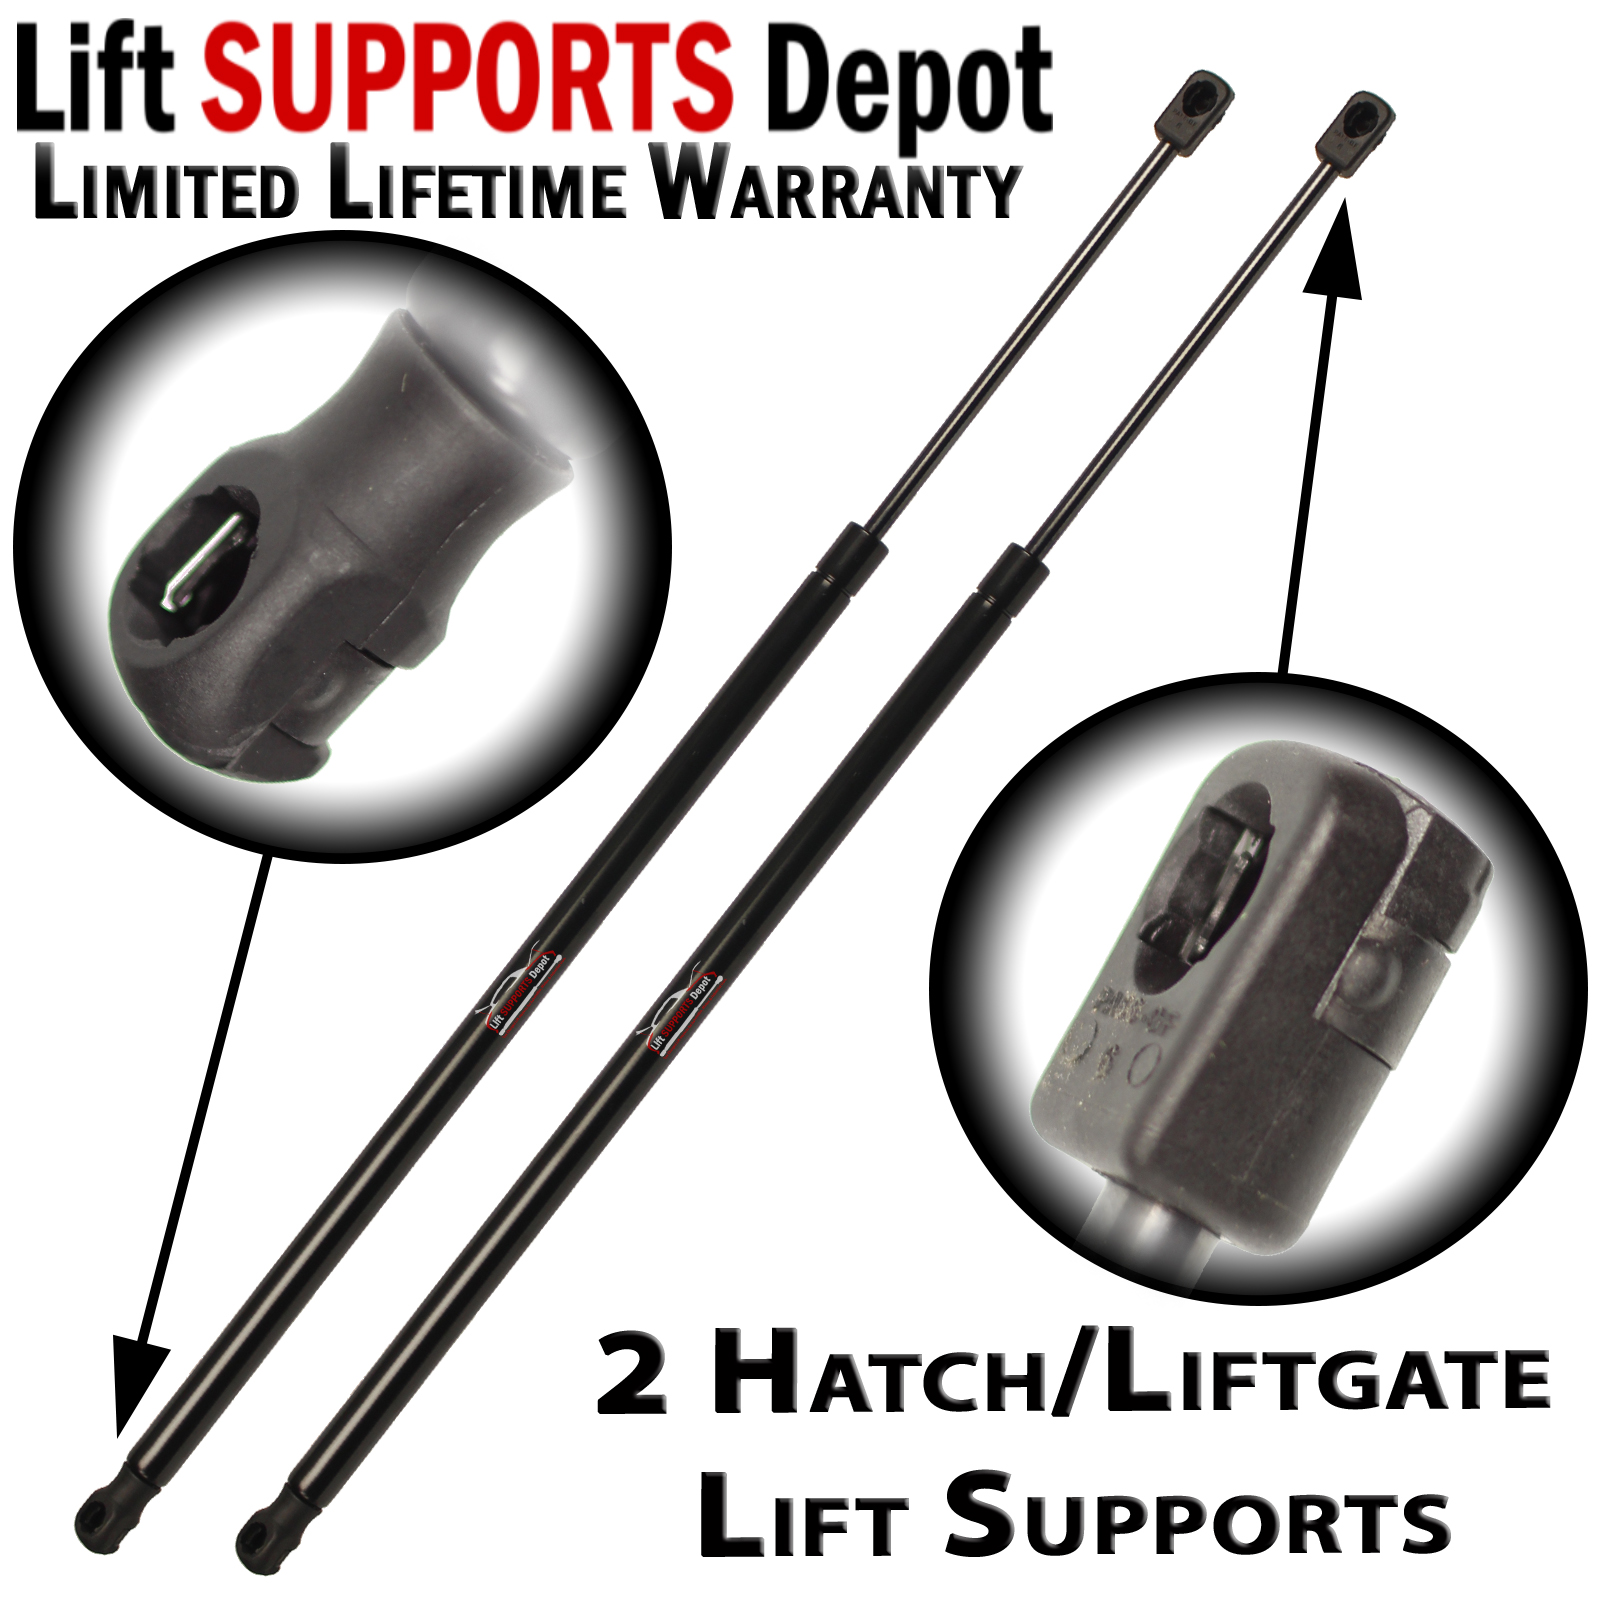 Qty(2) Fits Chevrolet Equinox 2005 To 2009 Liftgate Tailgate Lift Supports Struts - PM3042